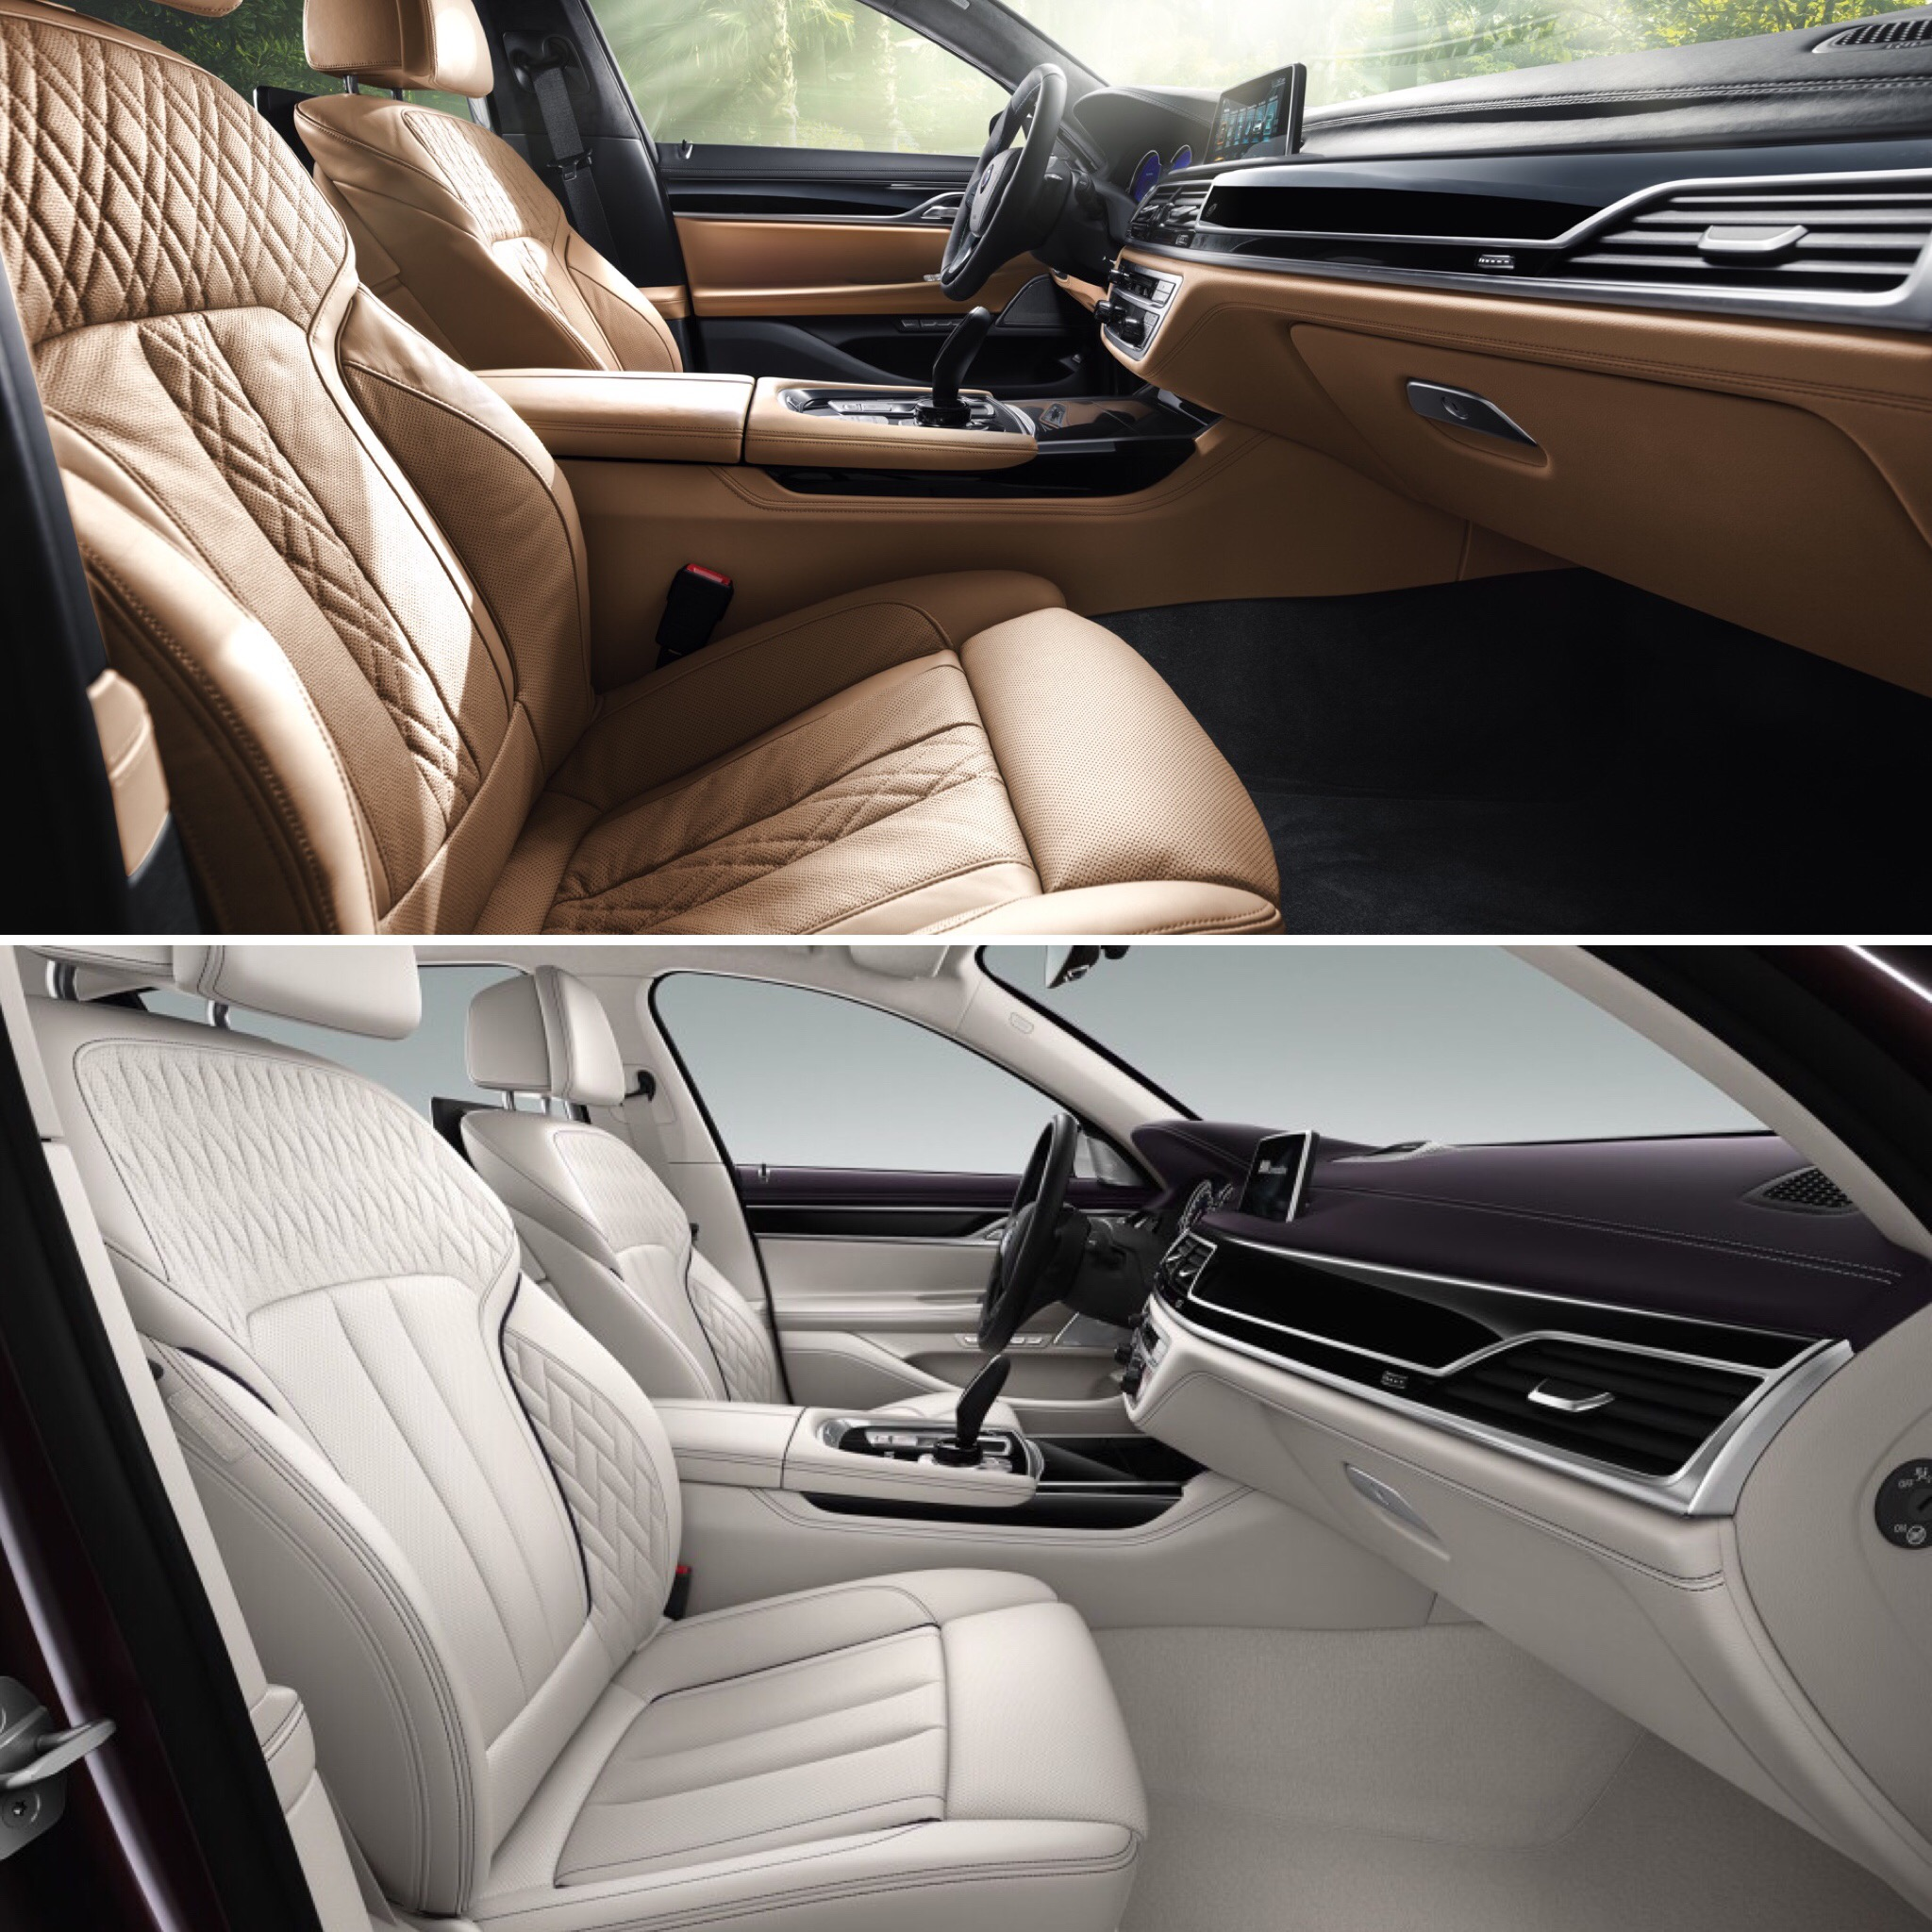 Bmw X7 Interior: Alpina B7 Vs BMW M760Li XDrive